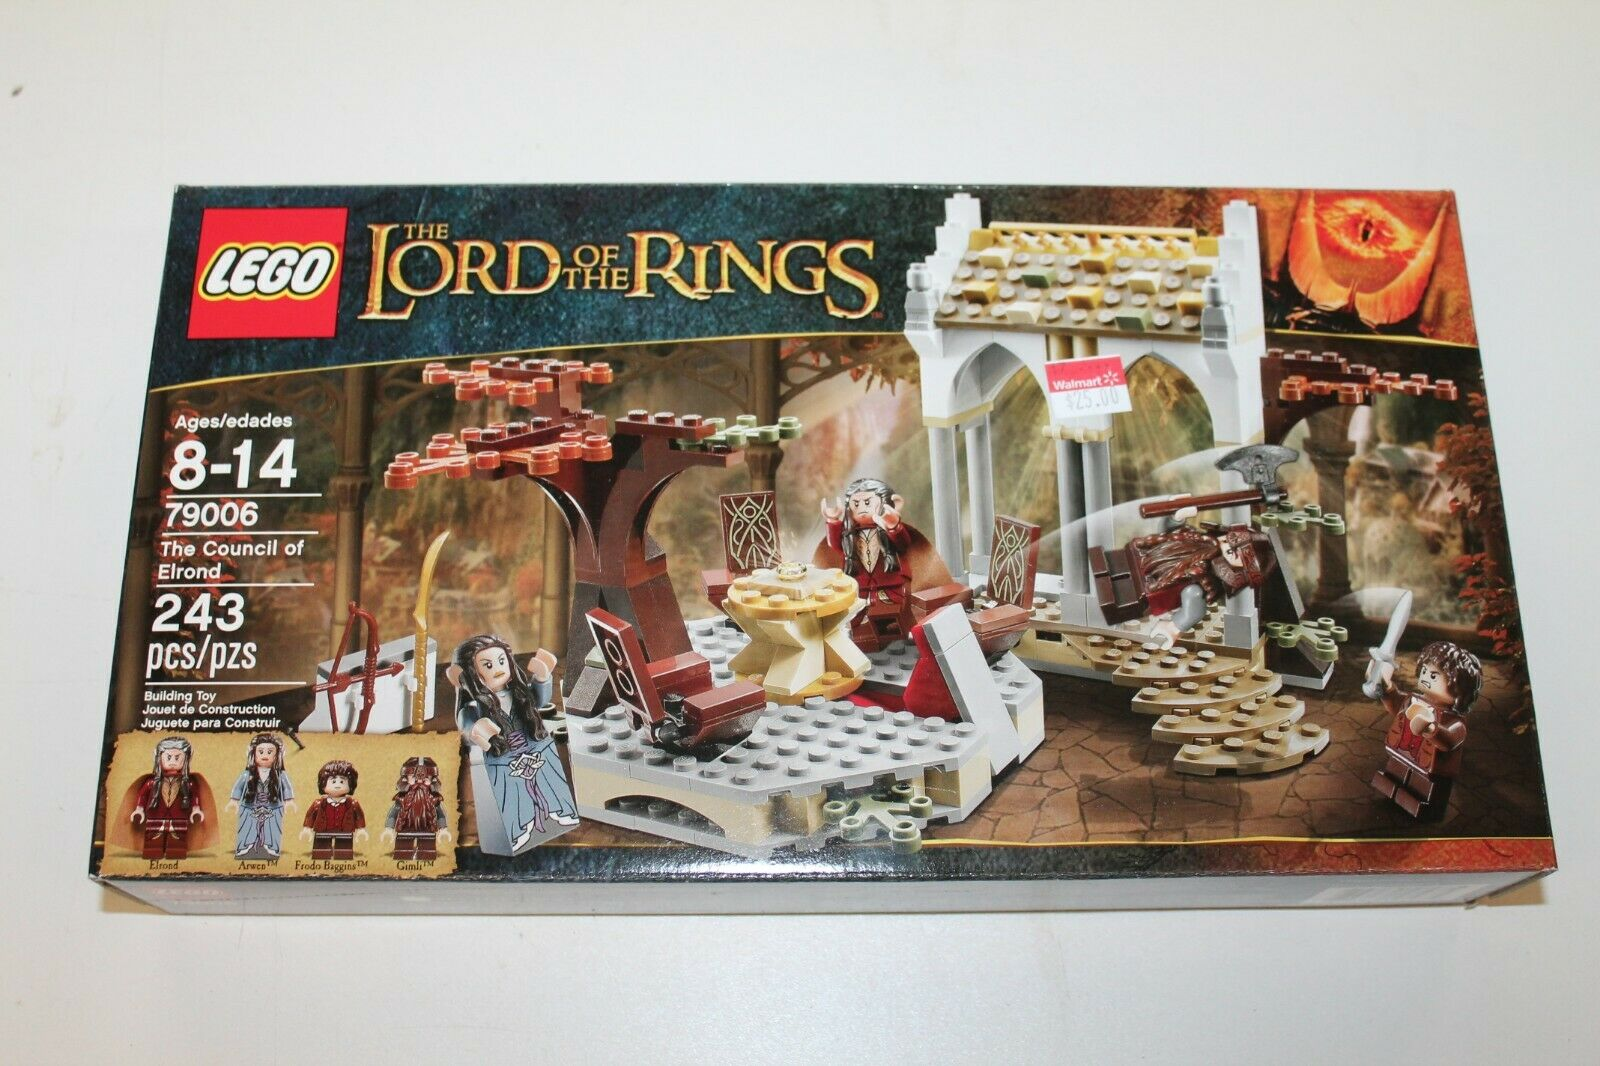 2013 LEGO LEGOS The Lord of the Rings-The Council  of Elrond MIB 79006  outlet